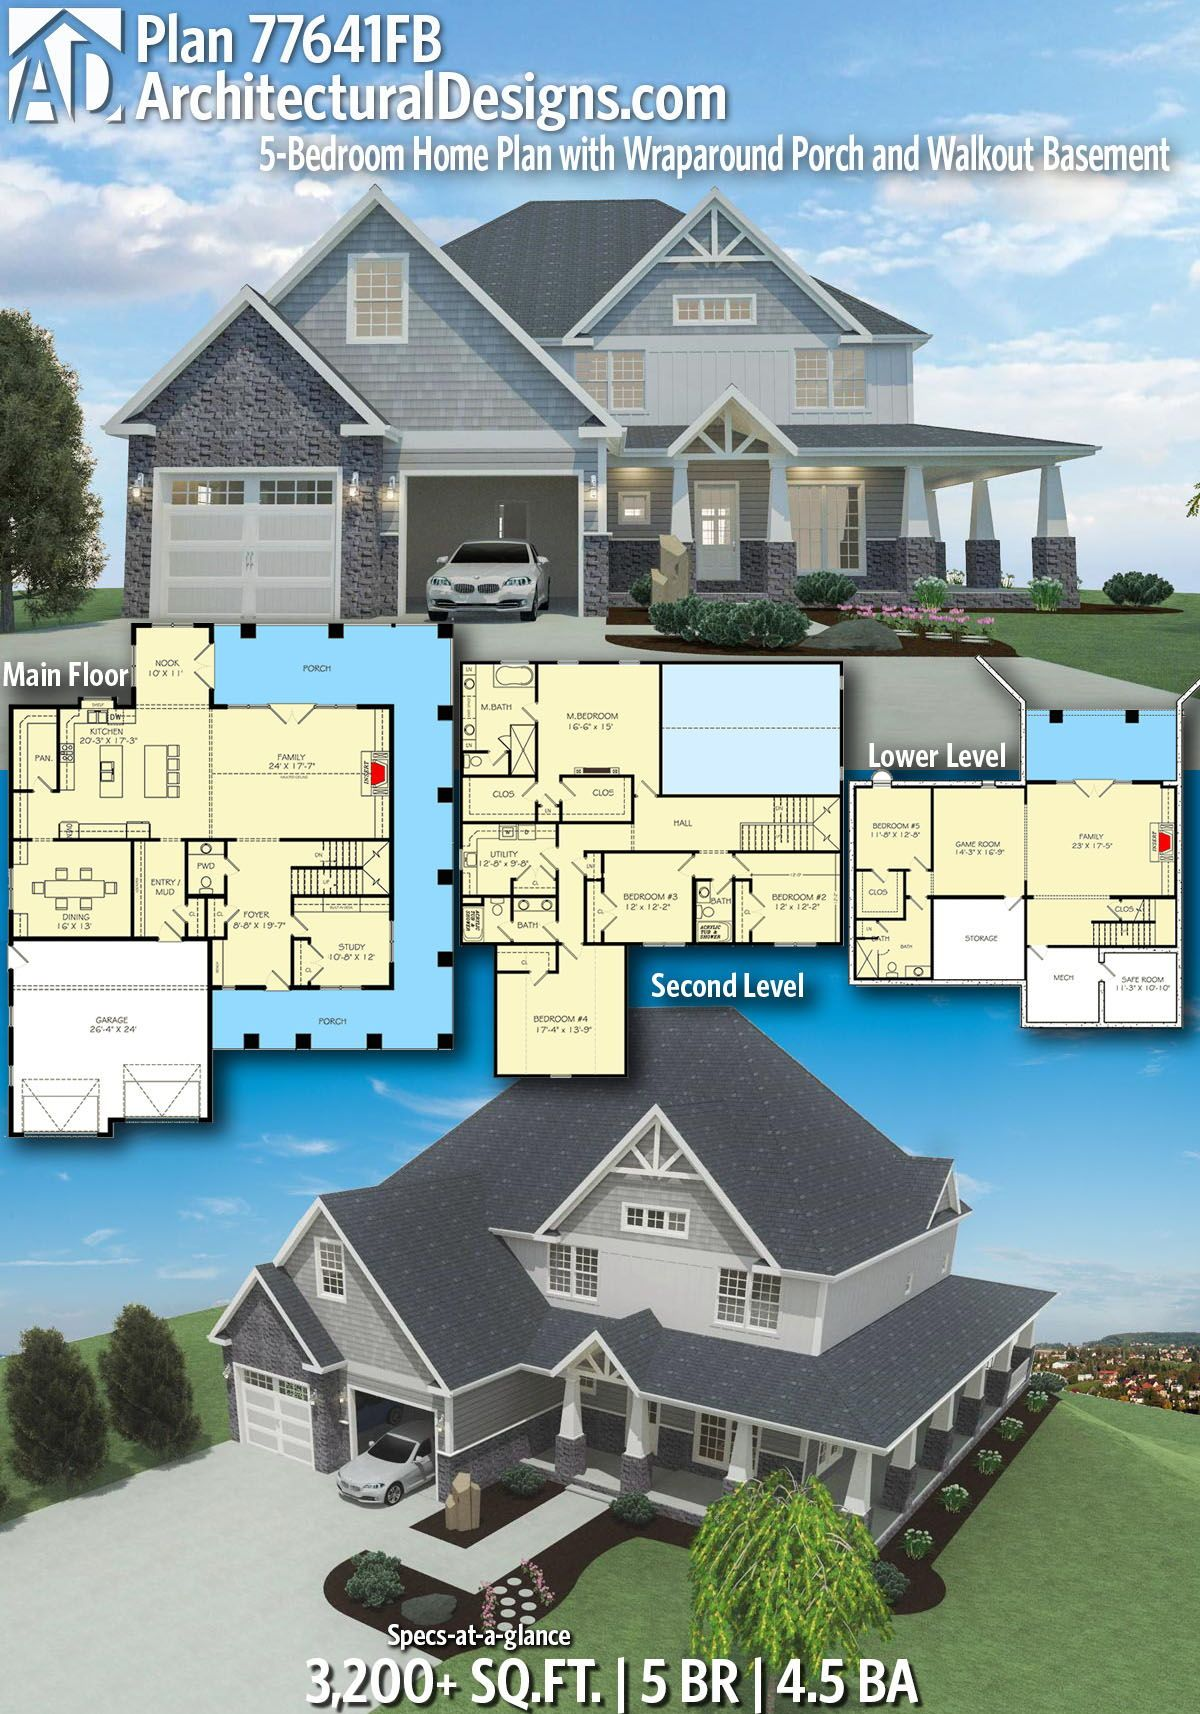 Plan 77641fb 4 Or 5 Bedroom Home Plan With Wraparound Porch And Walkout Basement Craftsman House Plans House Plans 5 Bedroom House Plans